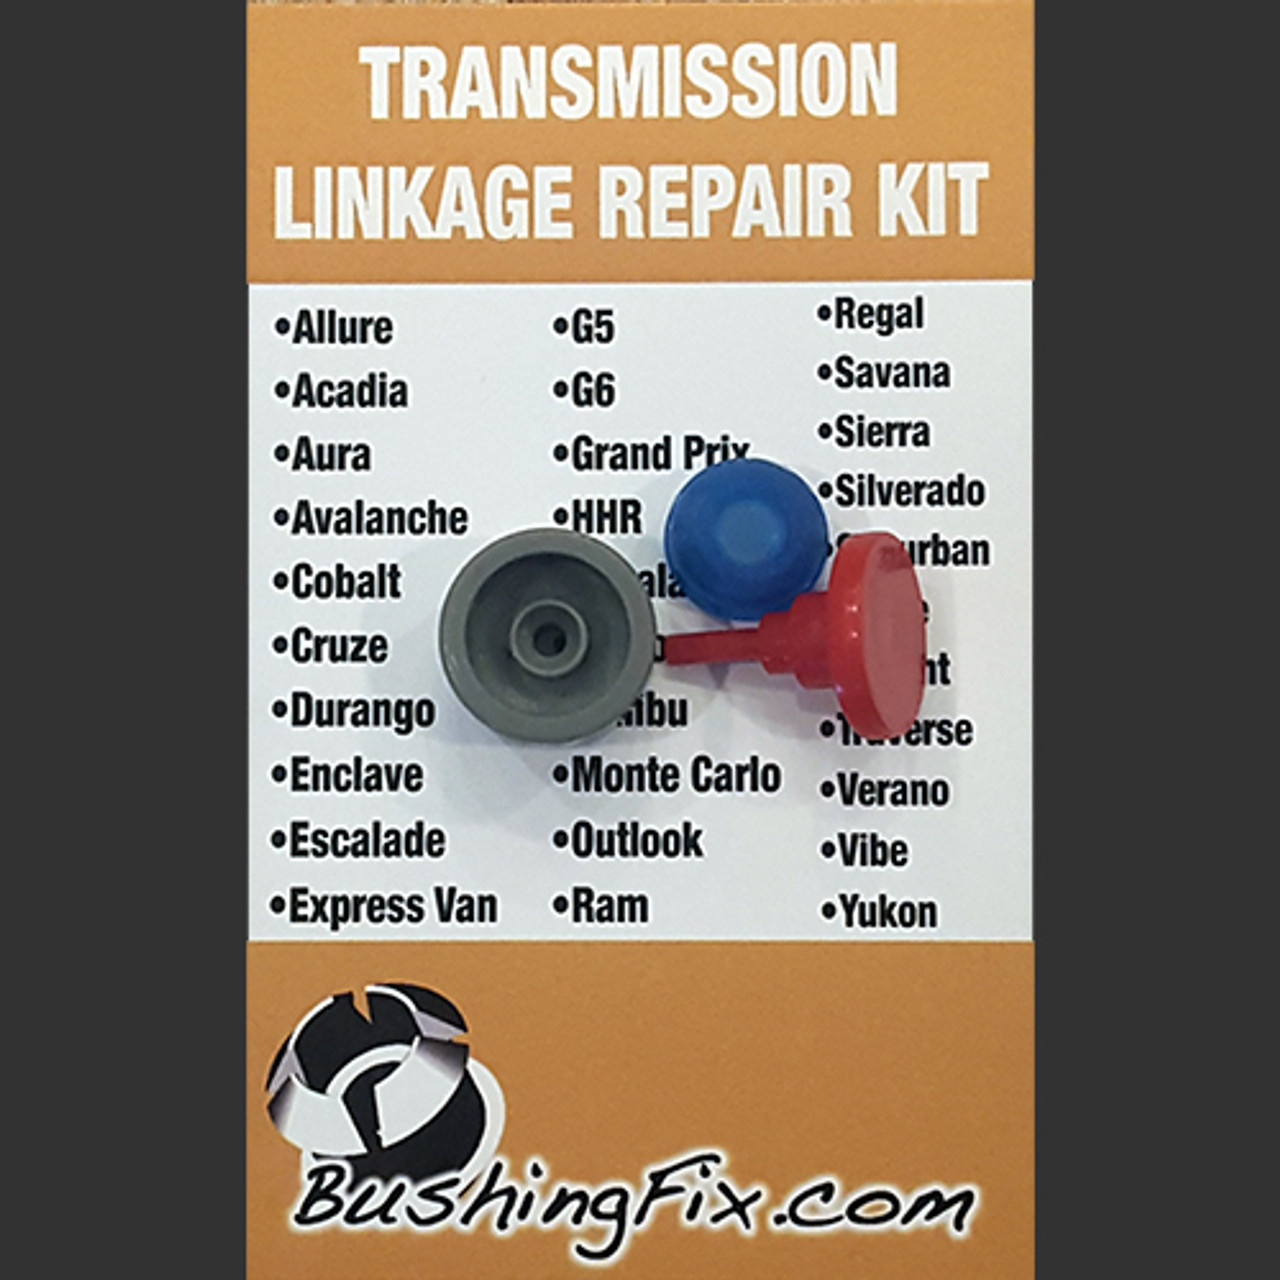 Chevrolet Express Van transmission shift selector cable repaired using the replacement bushing kit